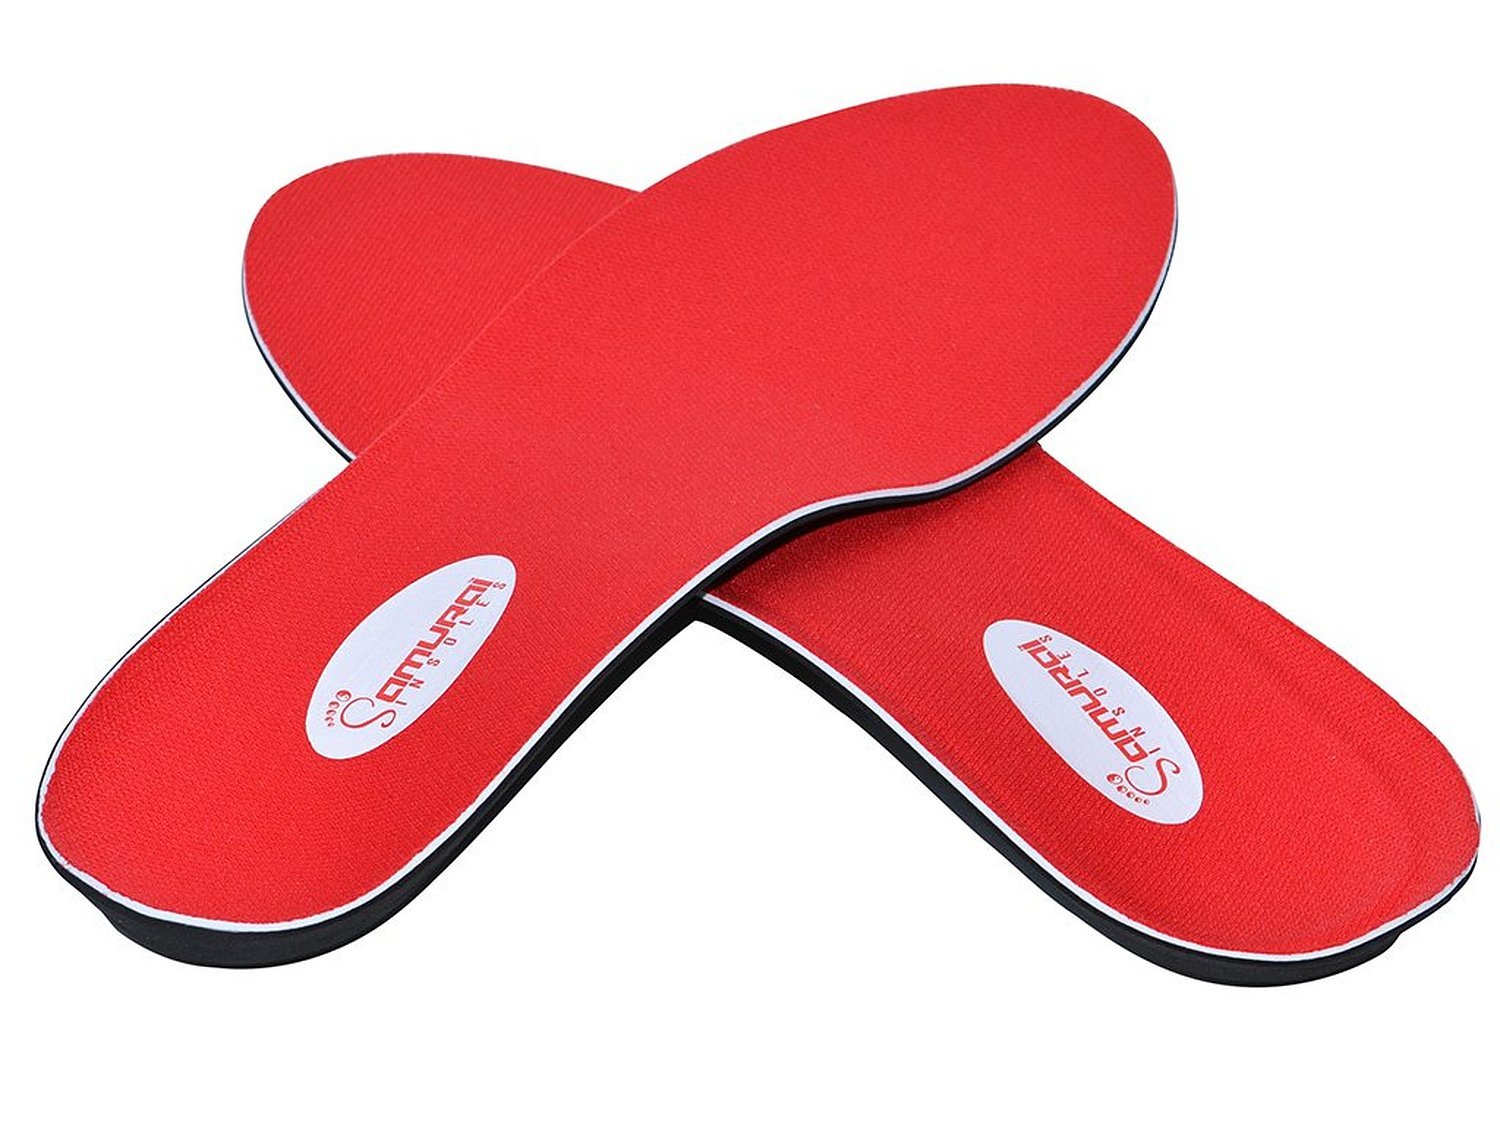 Best Insoles for Flat Feet - Orthotics for Flat Feet by Samurai Insoles